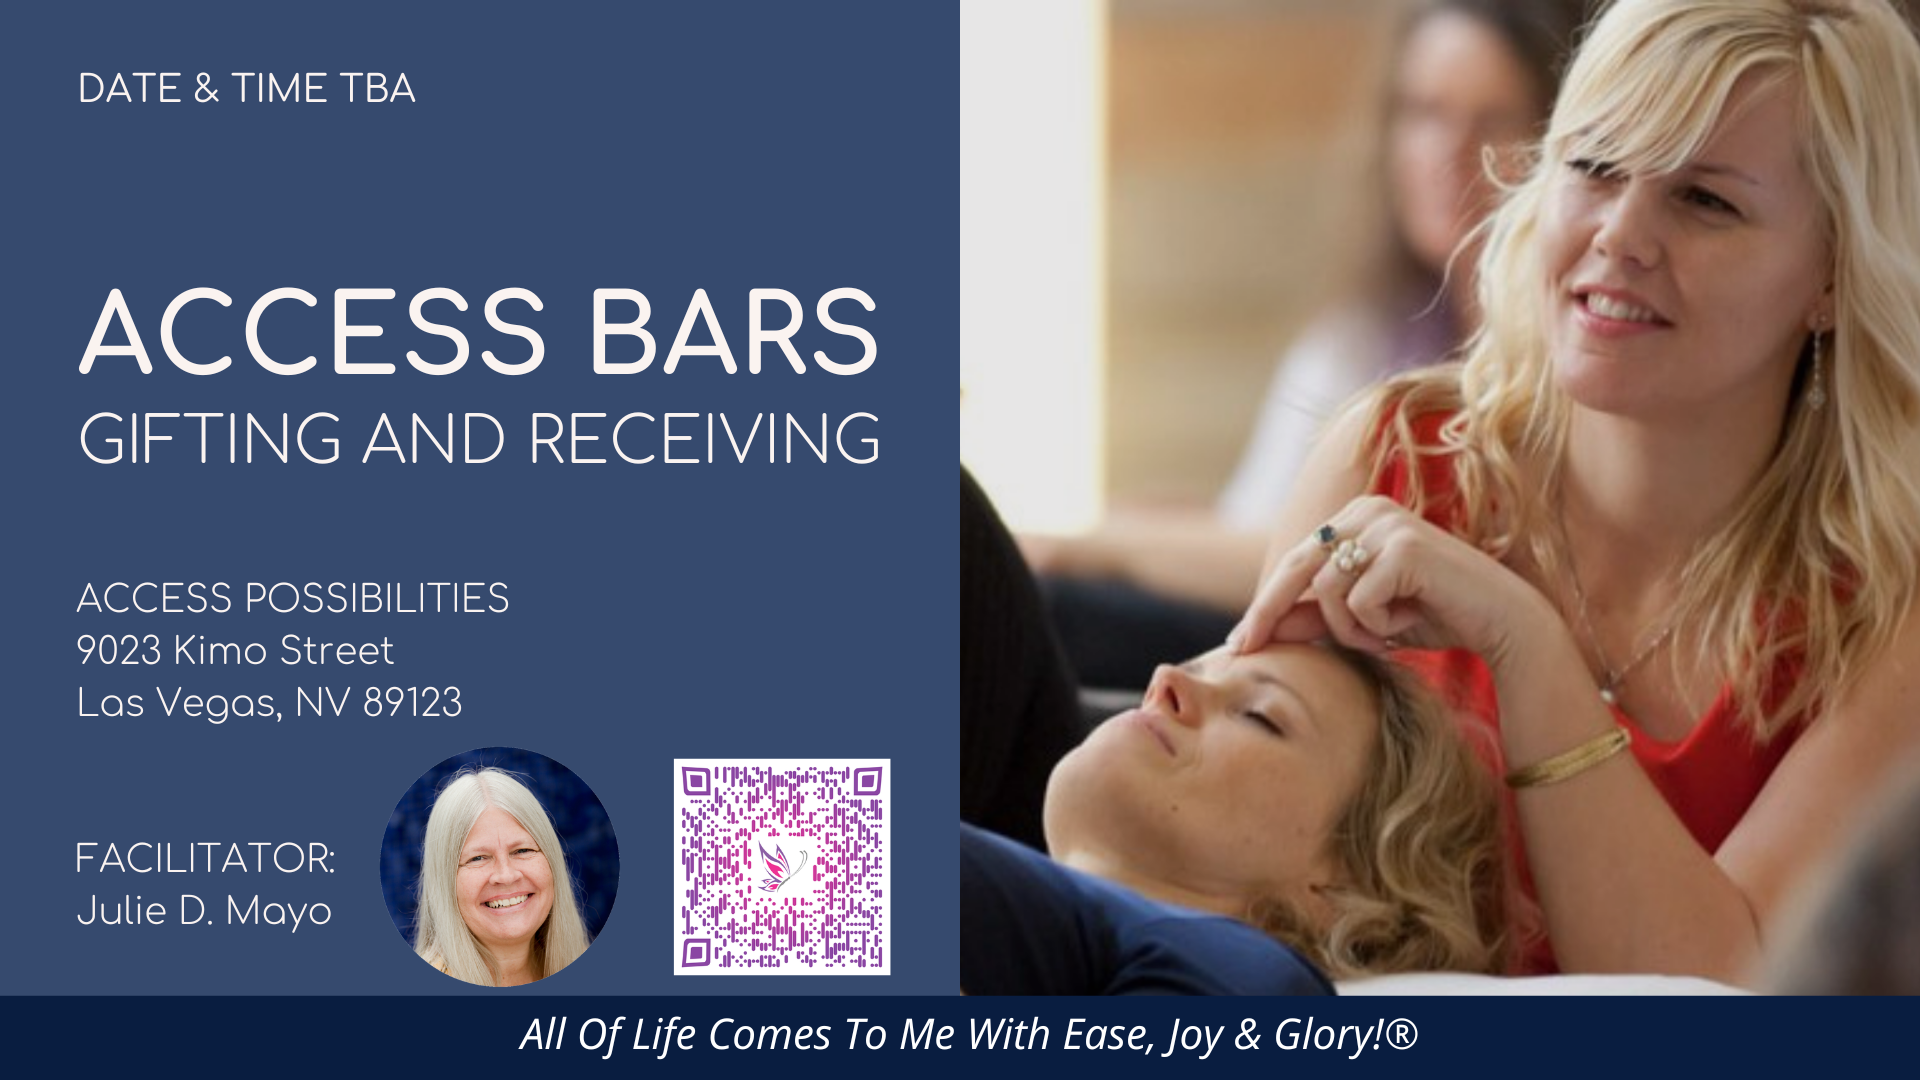 Access Bars Gifting And Receiving Event Details | Access Possibilities